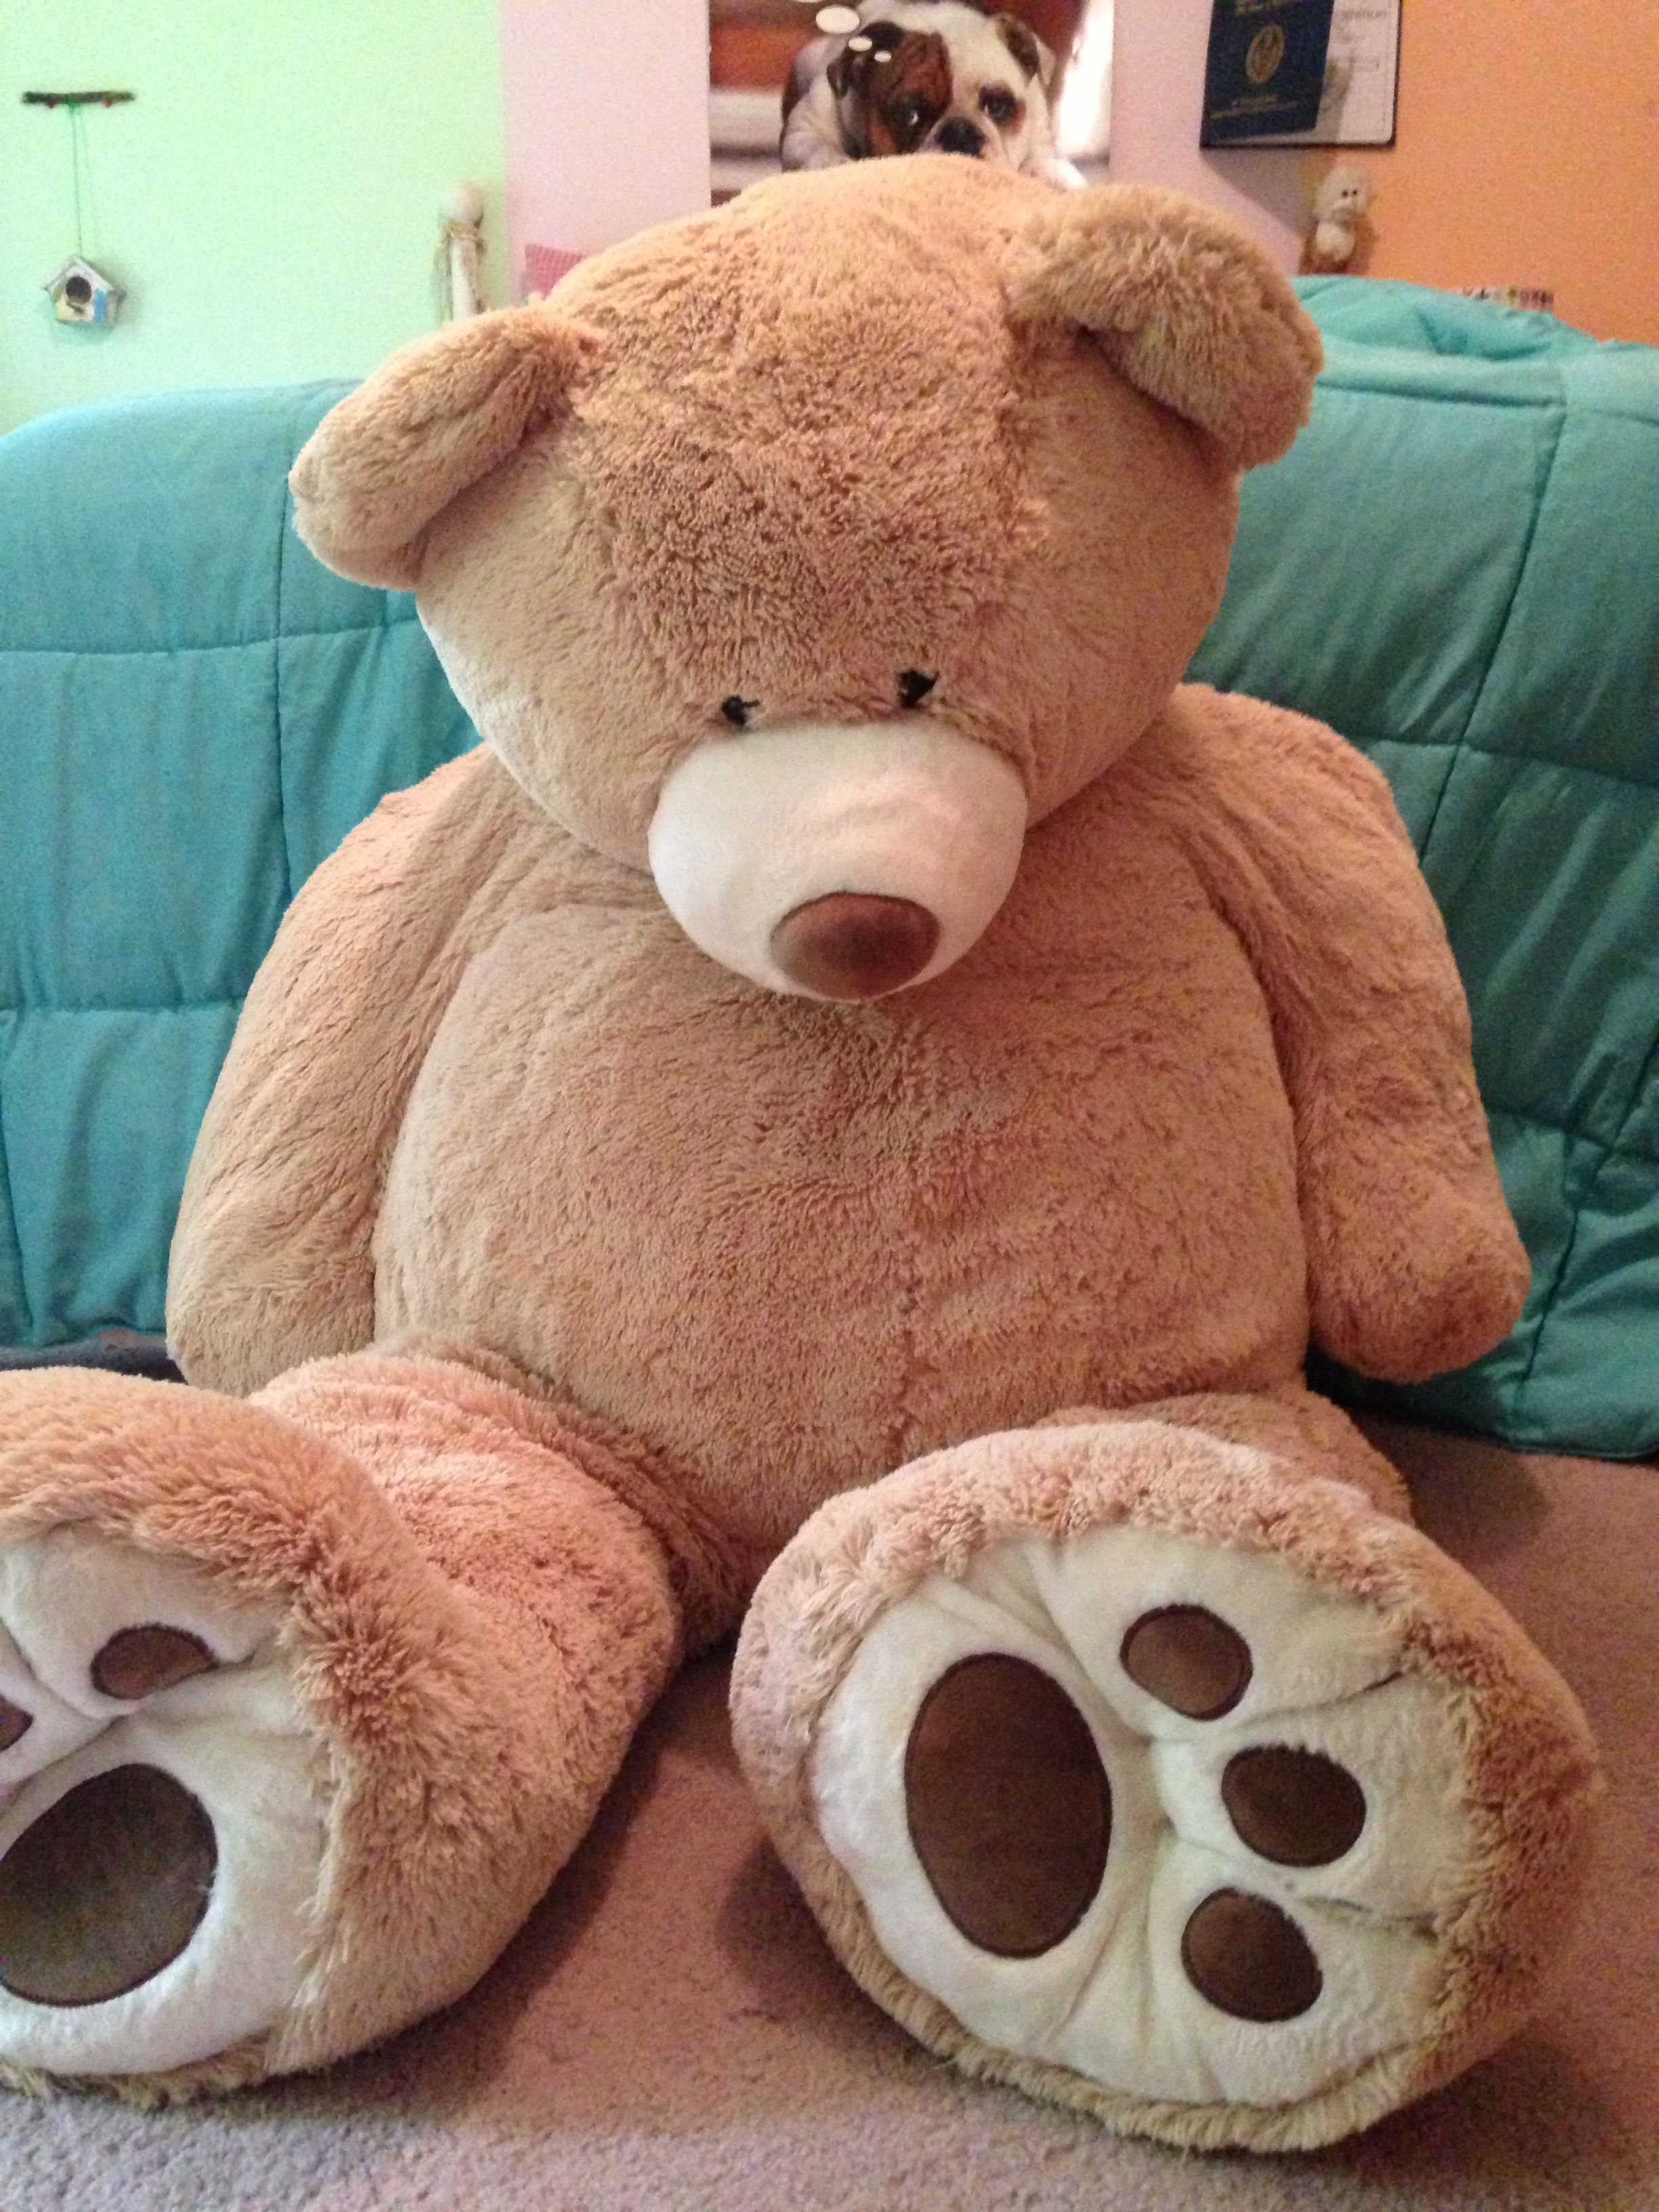 Giant teddy bear!!!